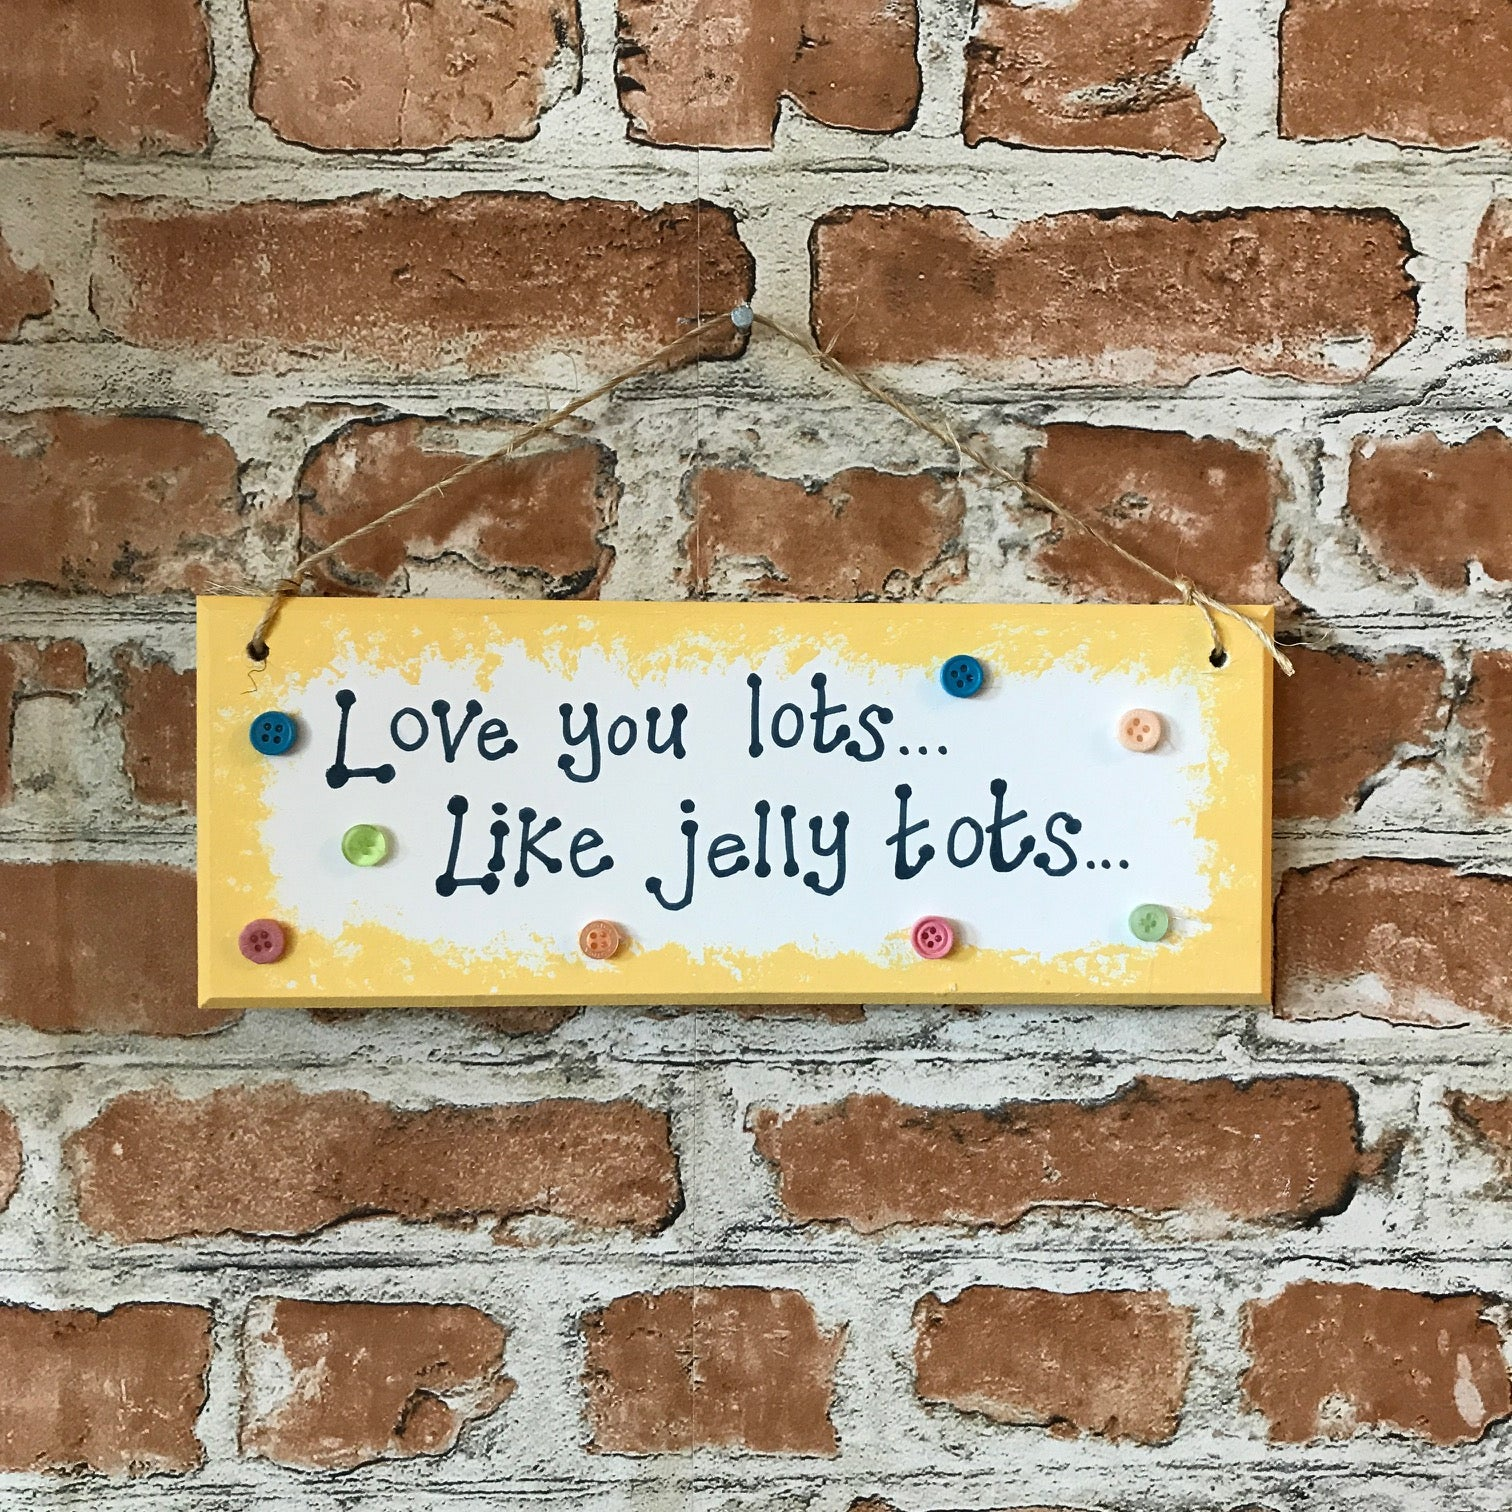 Love you lots like jelly tots - Handmade Wooden Plaque